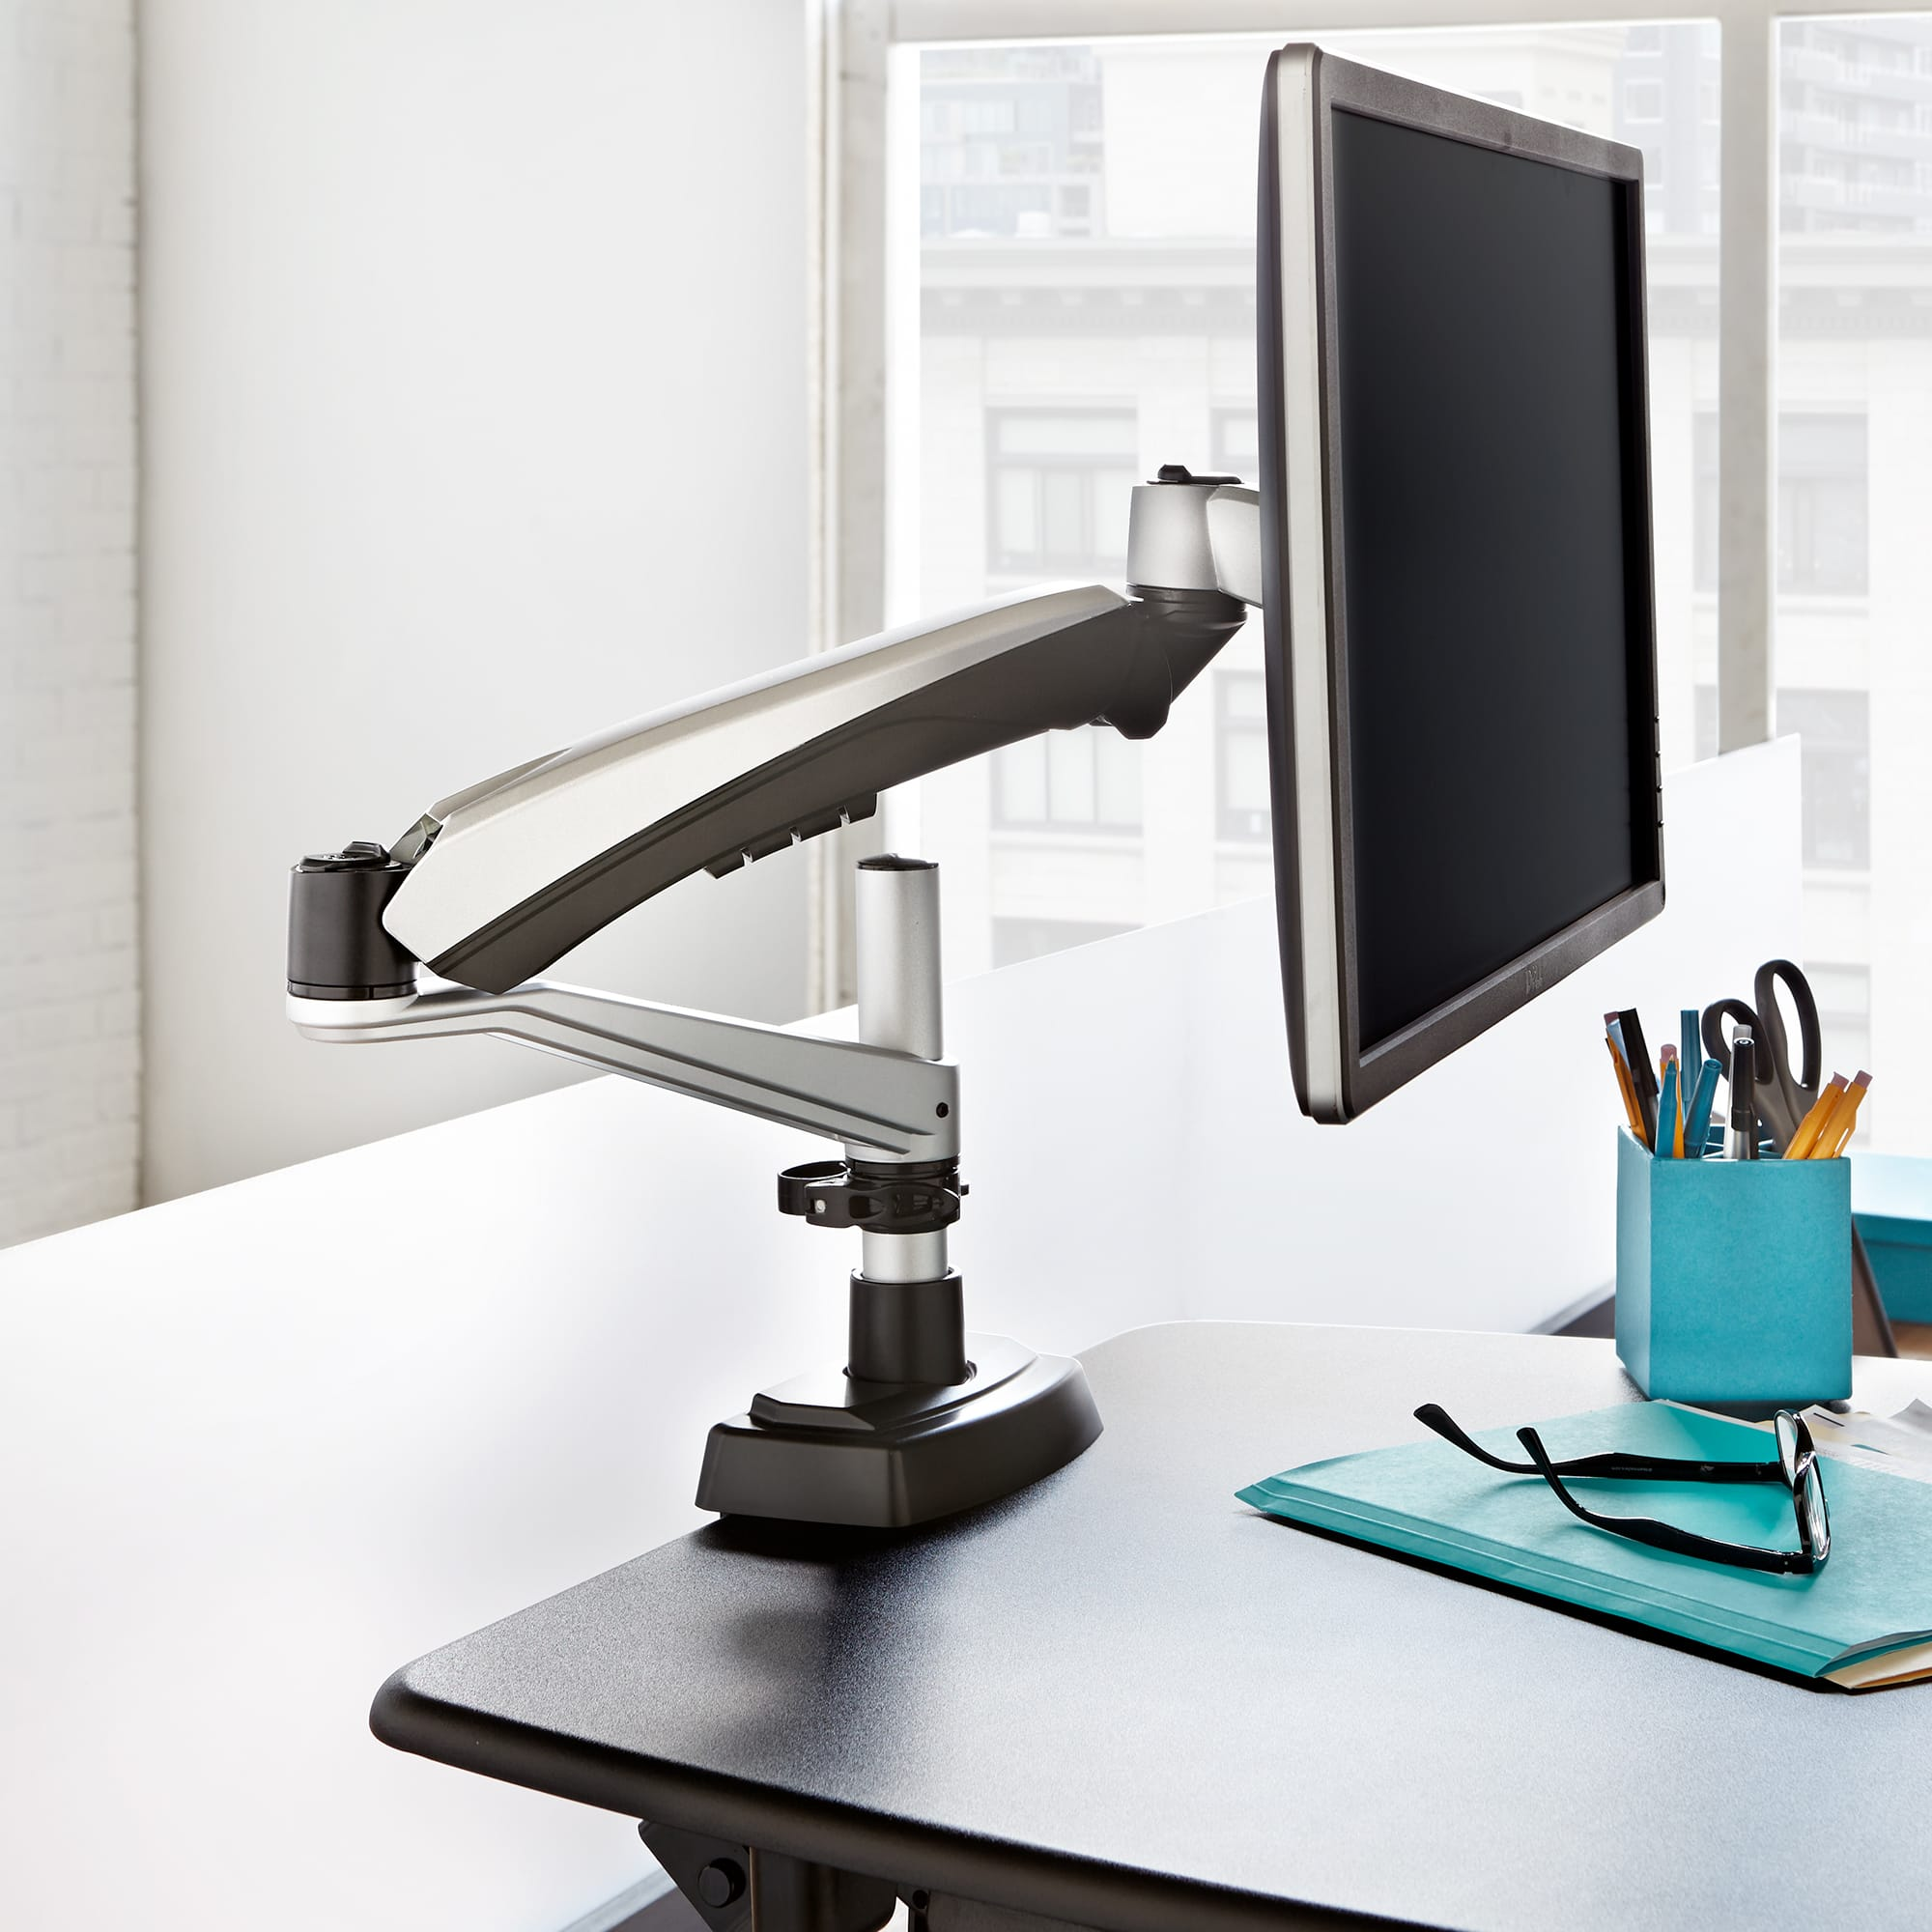 Single TV Computer Monitor Desk Articulating Mount Arm Stand Up To Wall Ergo